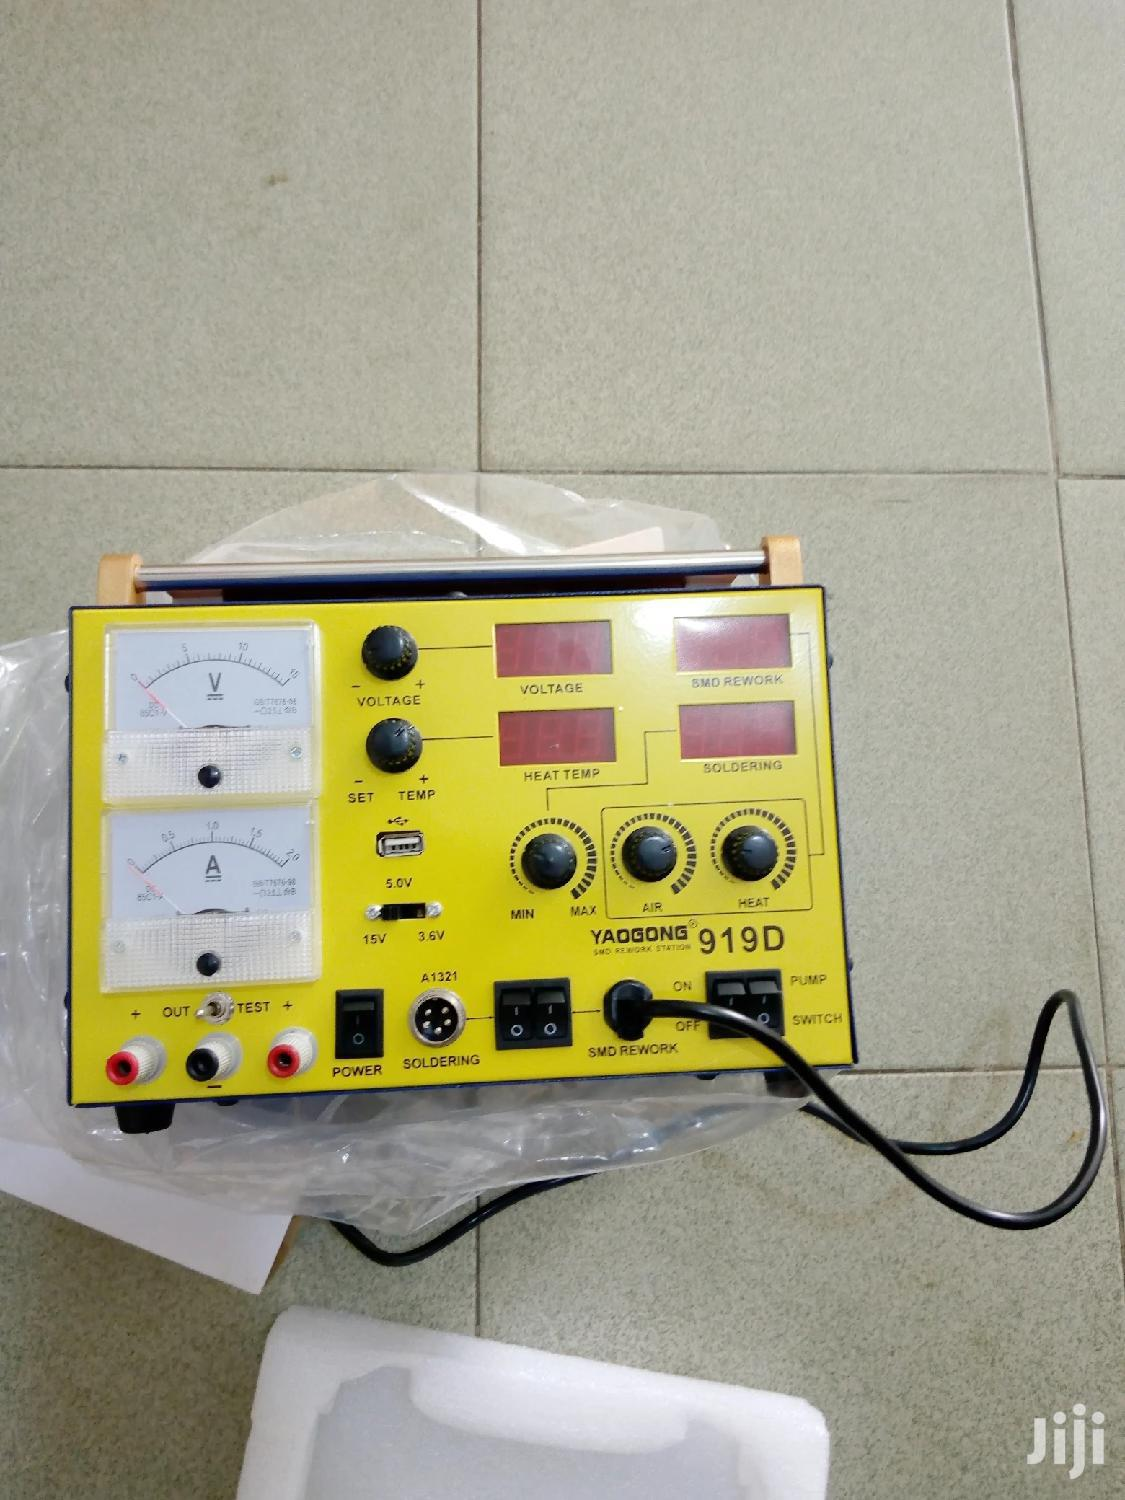 Archive: Blower With Power Supply And Separation Machine